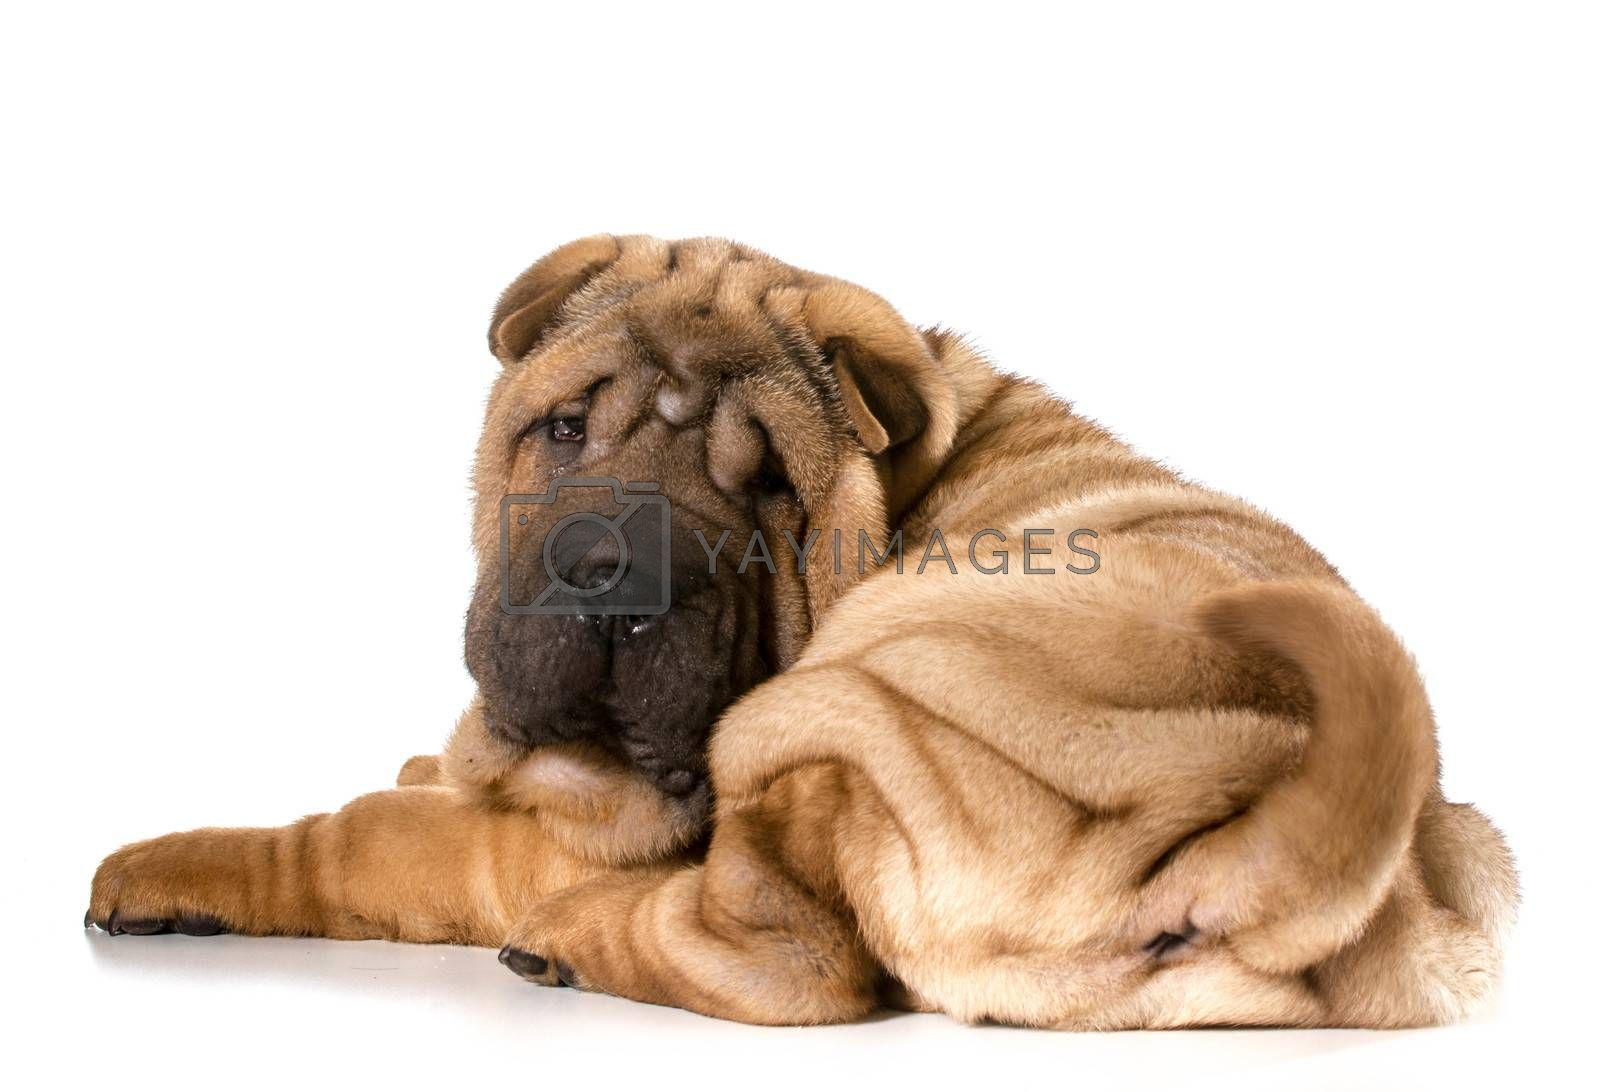 chinese shar pei puppy laying down looking at viewer isolated on white background - 4 months old